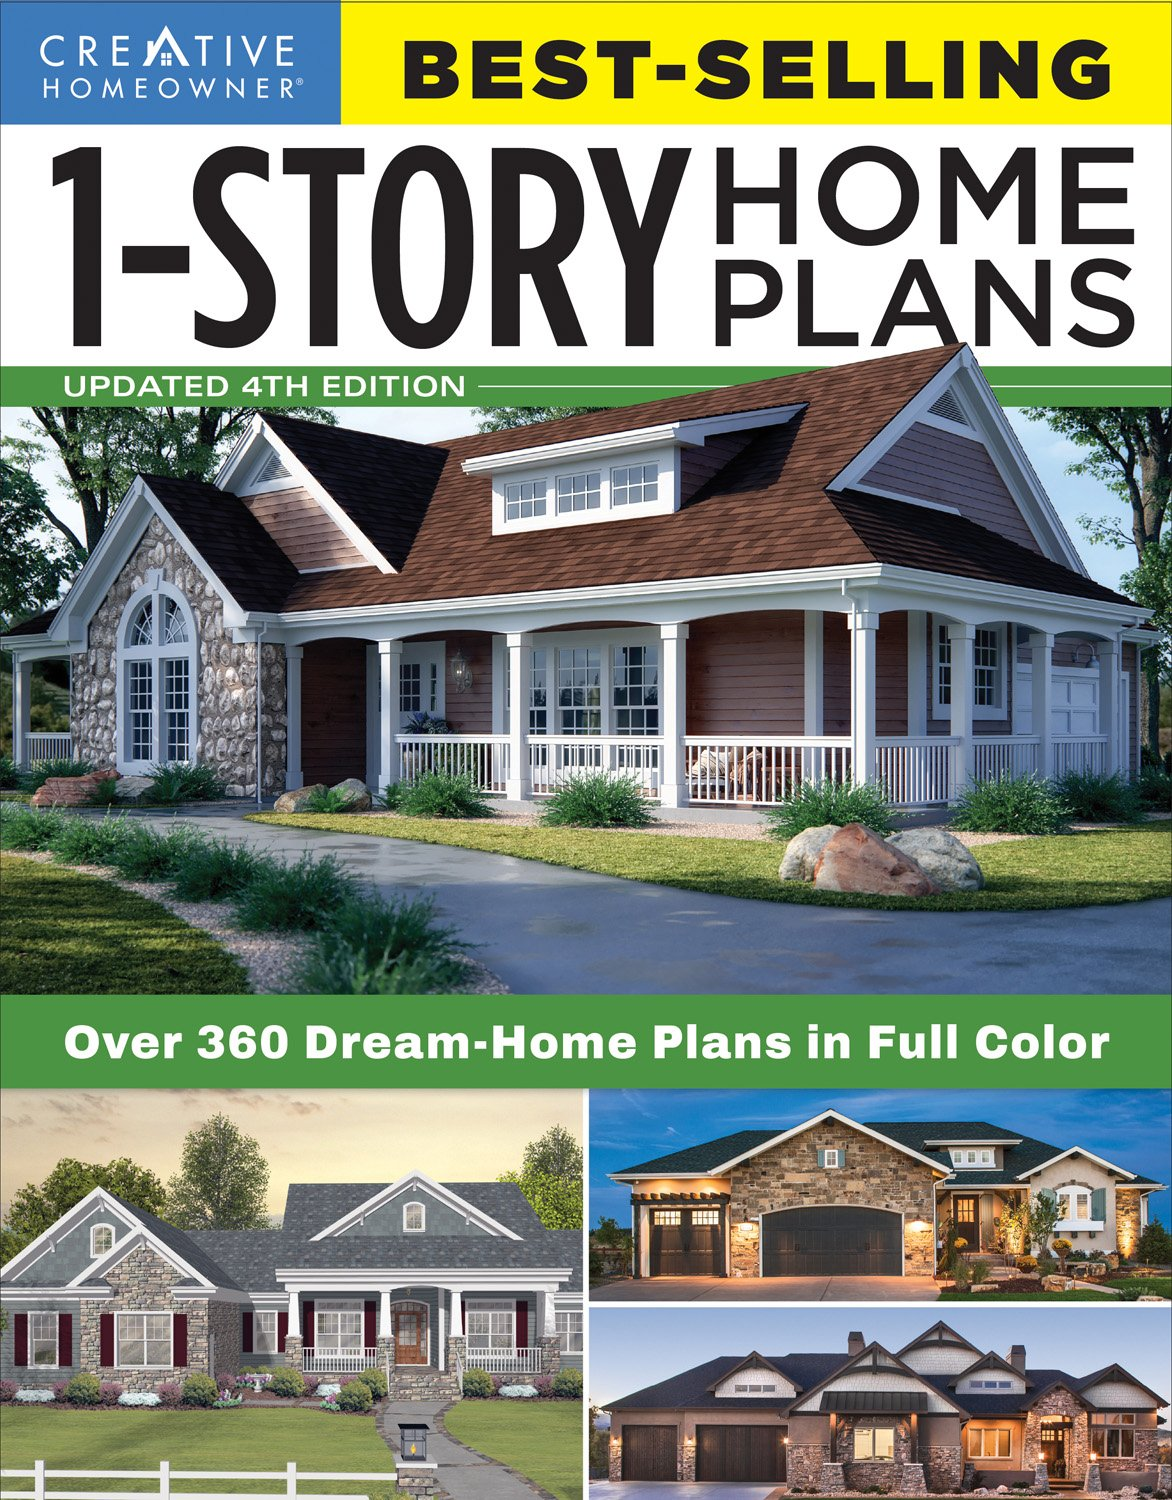 Best-Selling 1-Story Home Plans, Updated 4th Edition: Over ... on house rendering, house blueprints, house design, house construction, house foundation, house exterior, house building, house structure, house clip art, house types, house roof, house painting, house drawings, house framing, house styles, house maps, house elevations, house models, house plants, house layout,